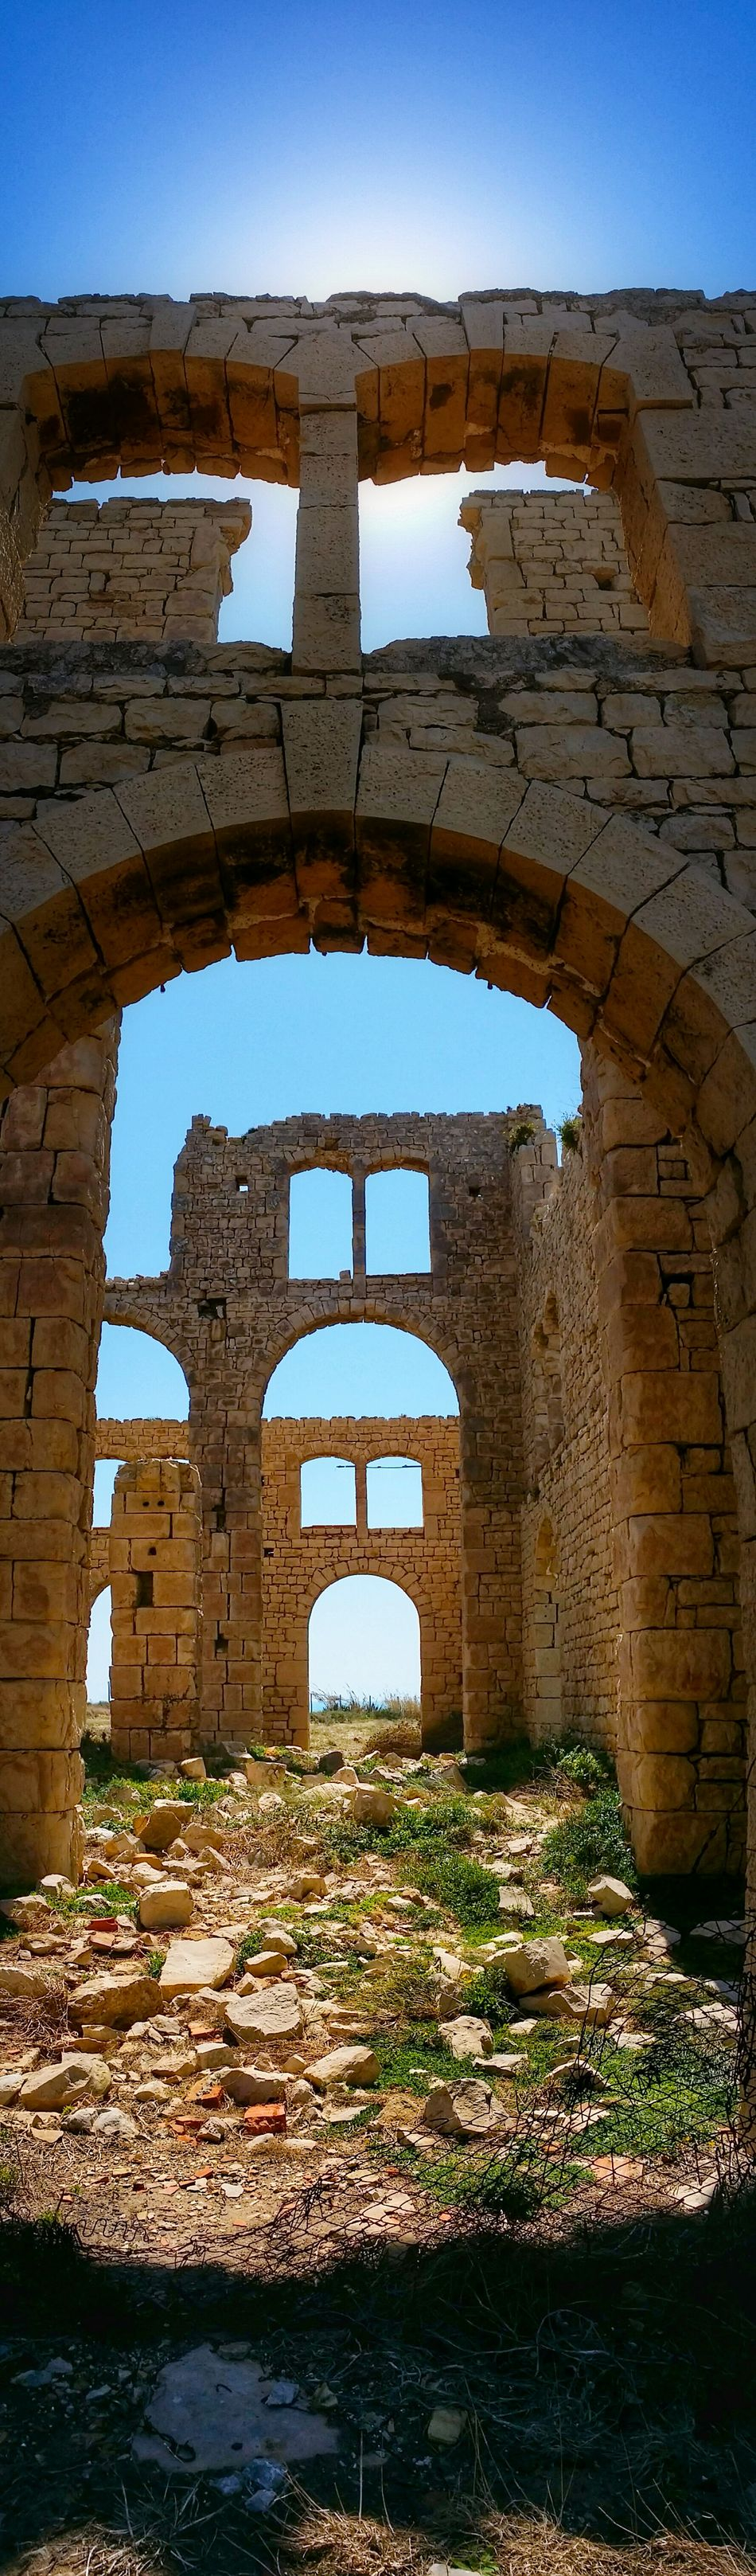 Sampieri Ragusa Sicily Italy Travel Photography Travel Voyage Traveling Mobile Photography Fine Art Backlight Panoramic Views Architecture Early XX Century's Industrial Facilities Furnaces Ruins Mobile Editing The Great Outdoors With Adobe The Architect - 2016 EyeEm Awards